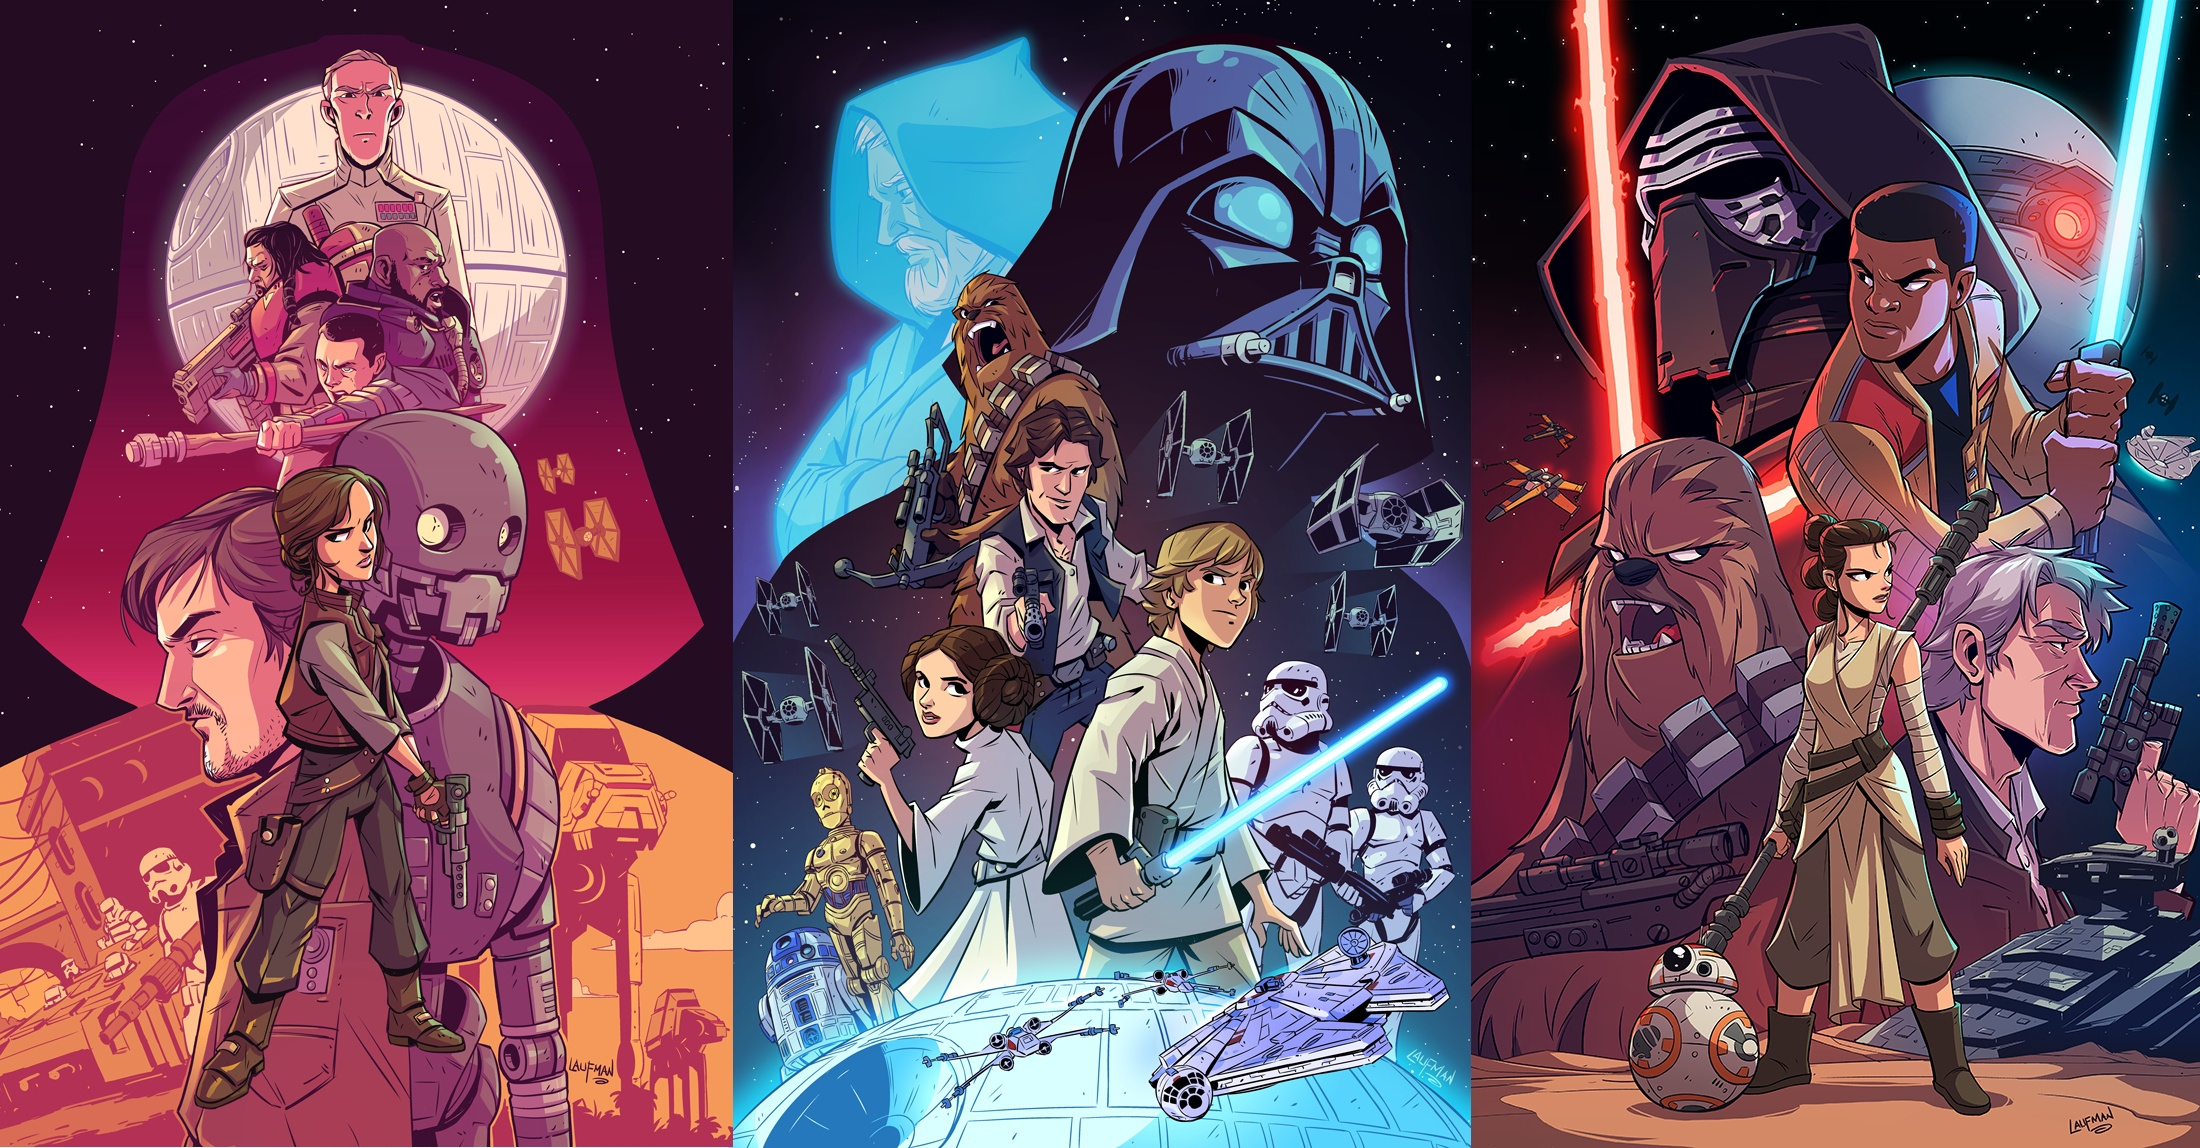 Cartoon Collage Of Star Wars Movies Hd Wallpaper Background